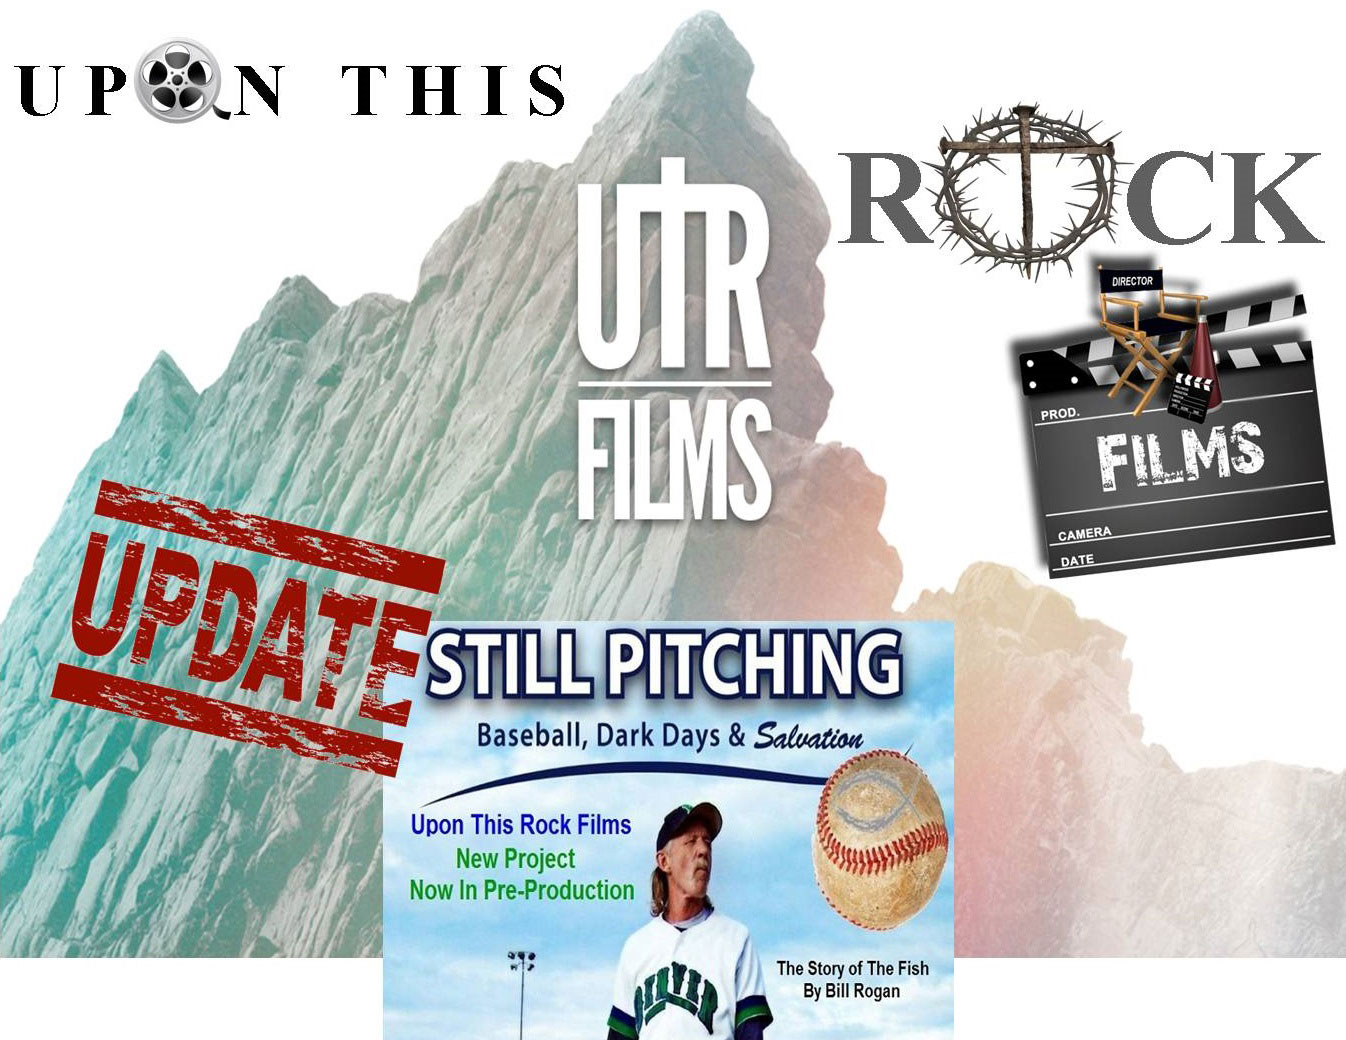 Check Out UTRF's Full Length Christian Film 'STILL PITCHING'